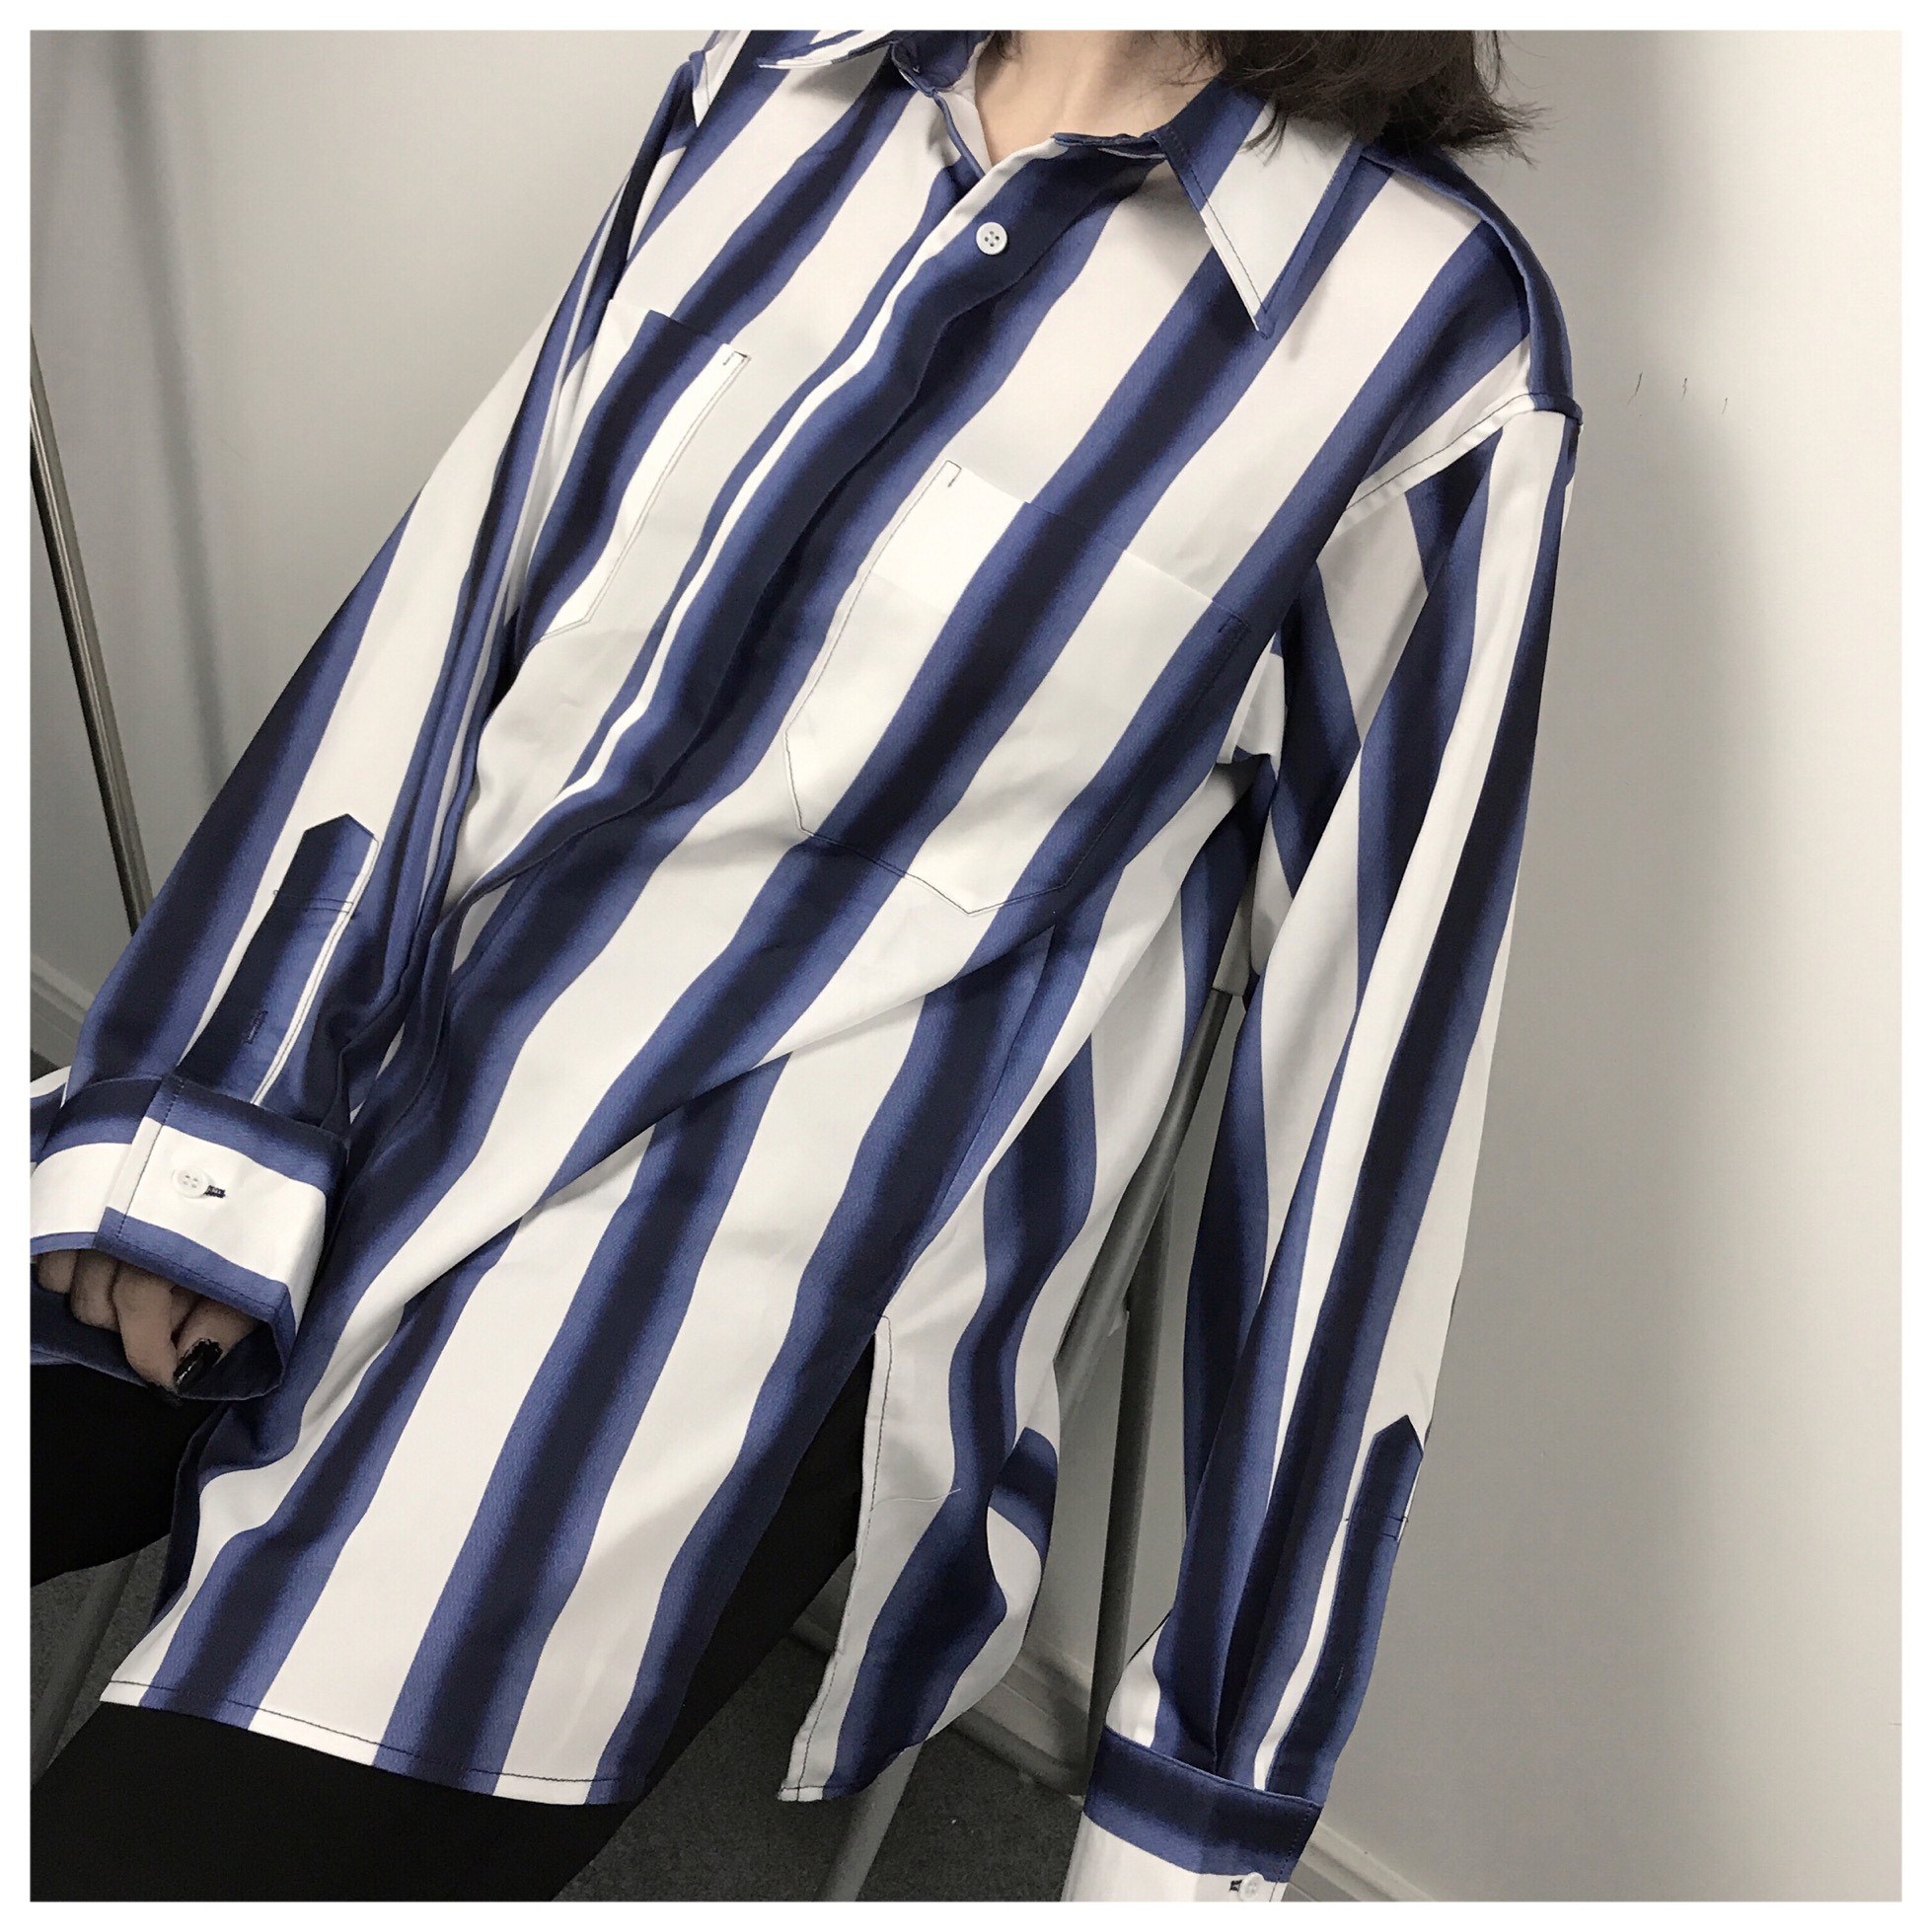 2018 Women Long Sleeve Button Tops Lady Casual Loose Shirt Formal Striped Blouse